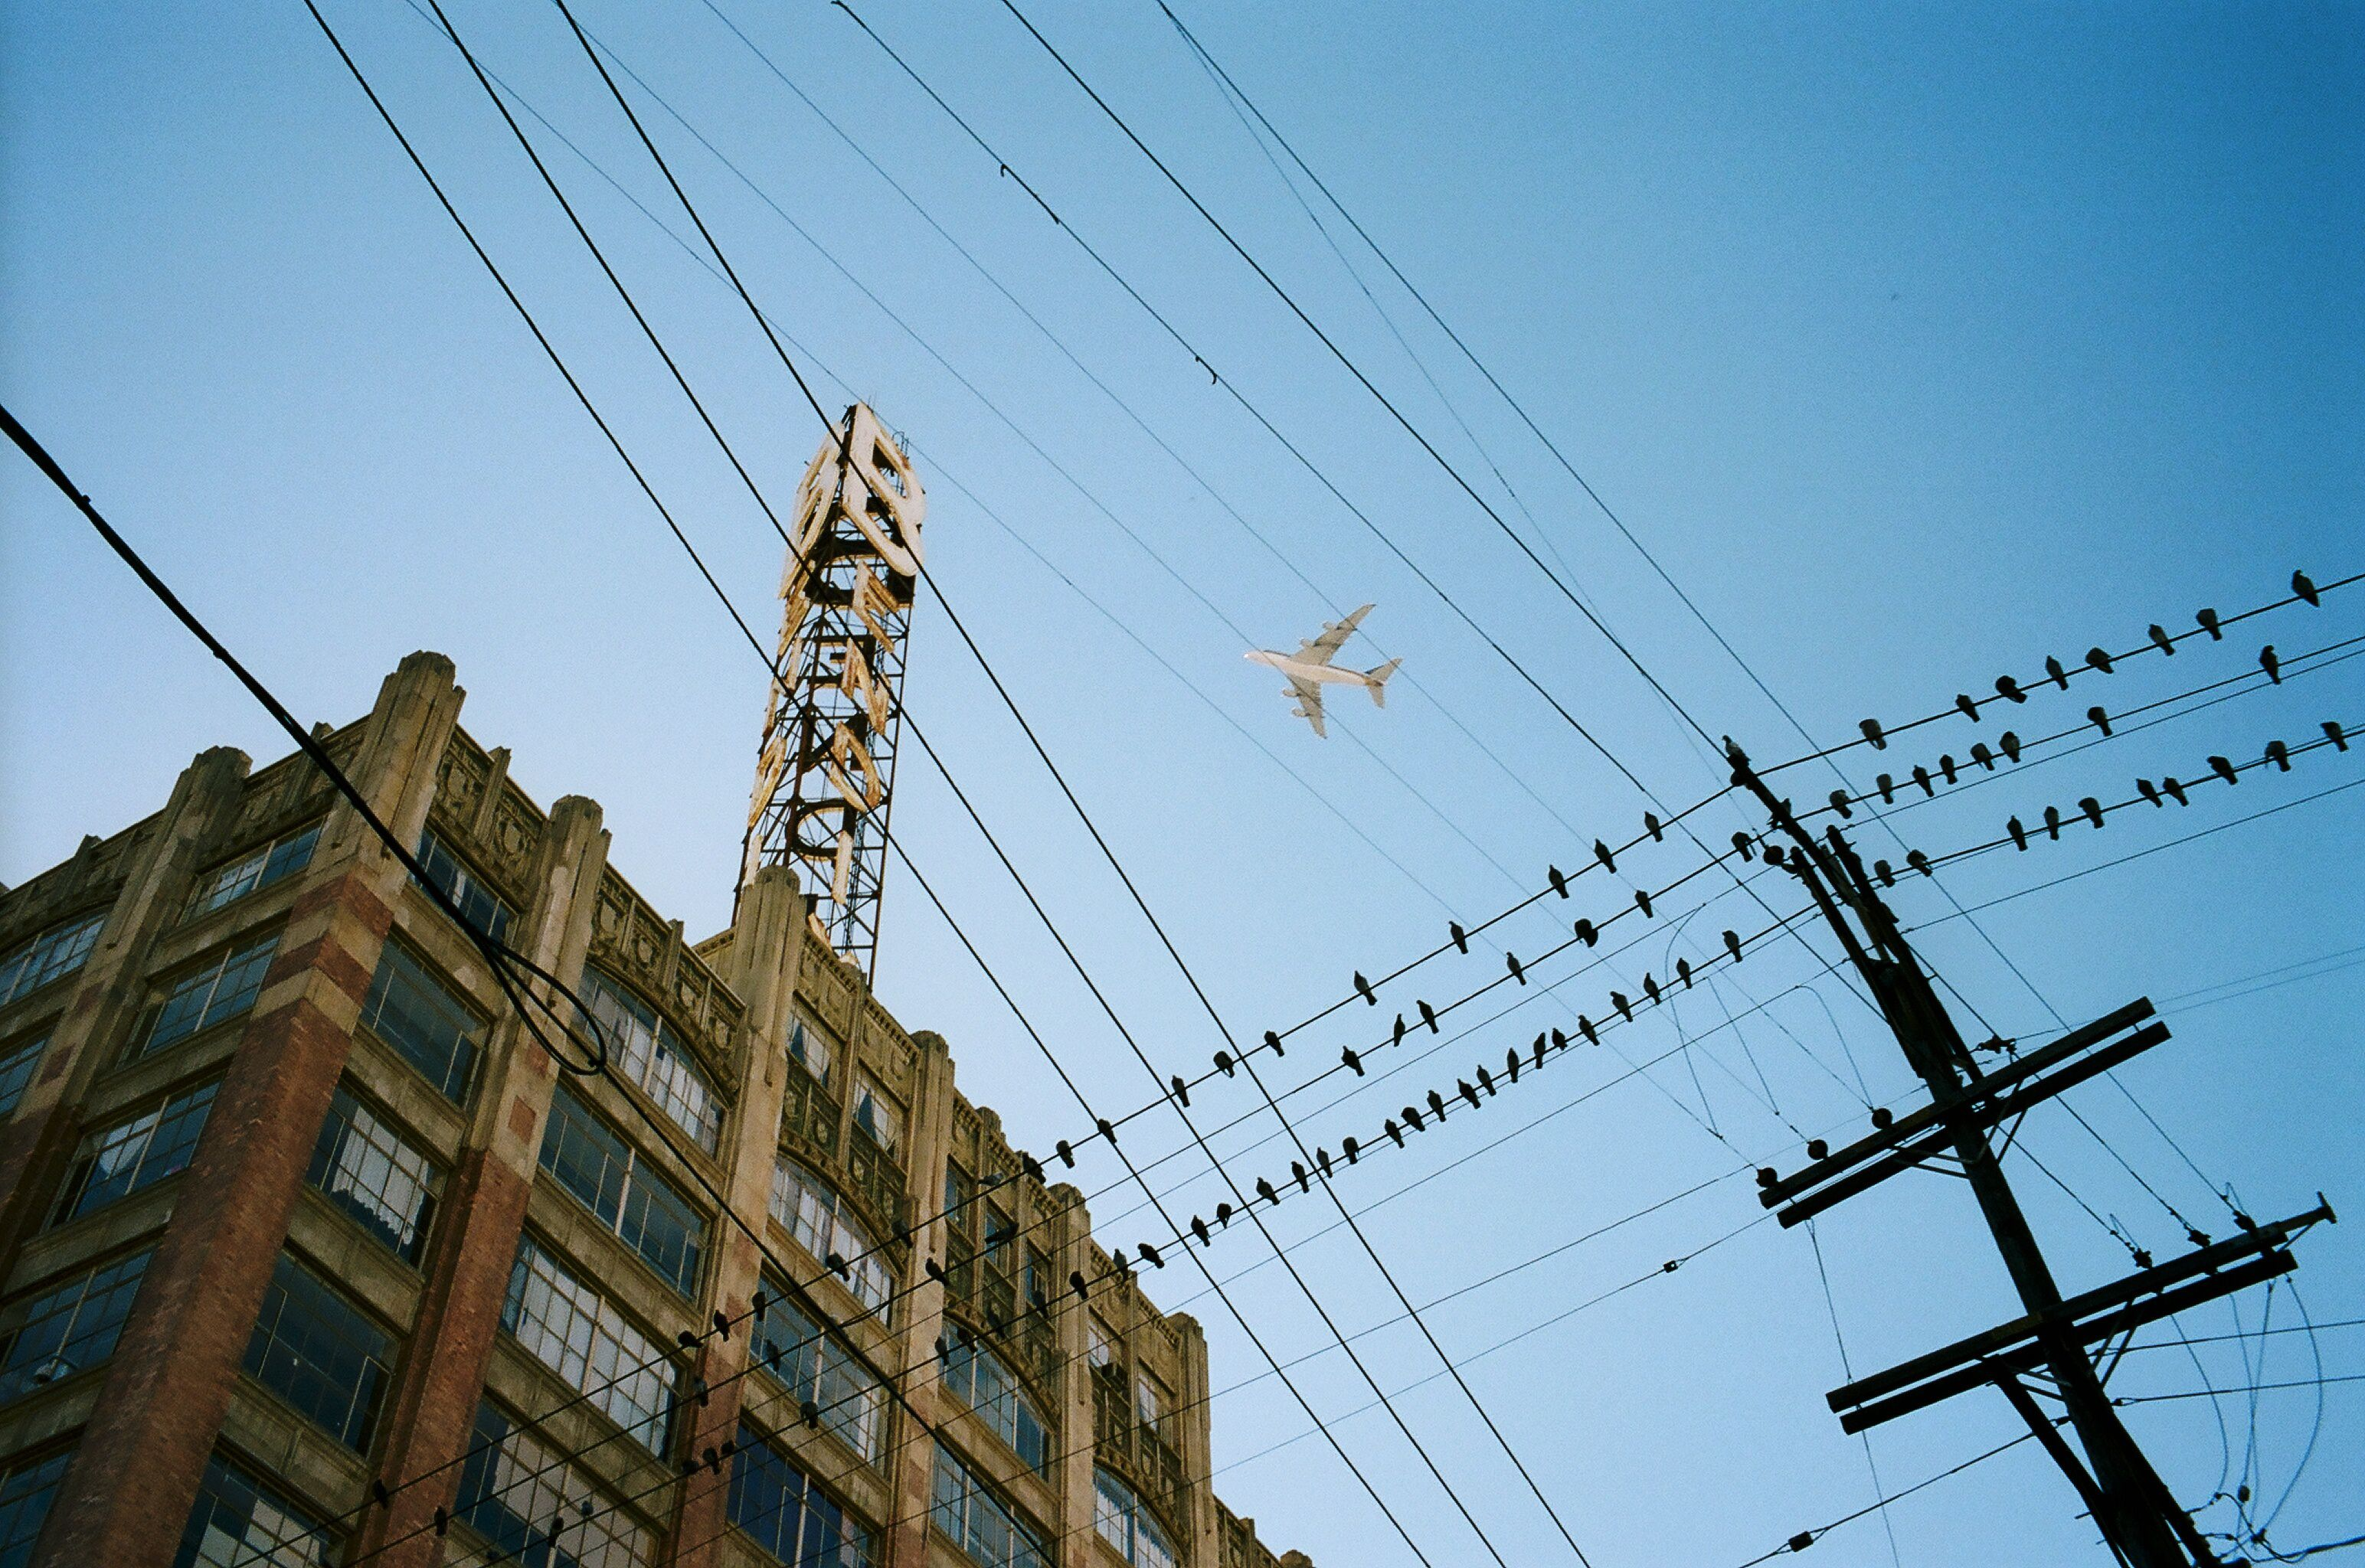 eric kim color chroma airplane downtown la poles